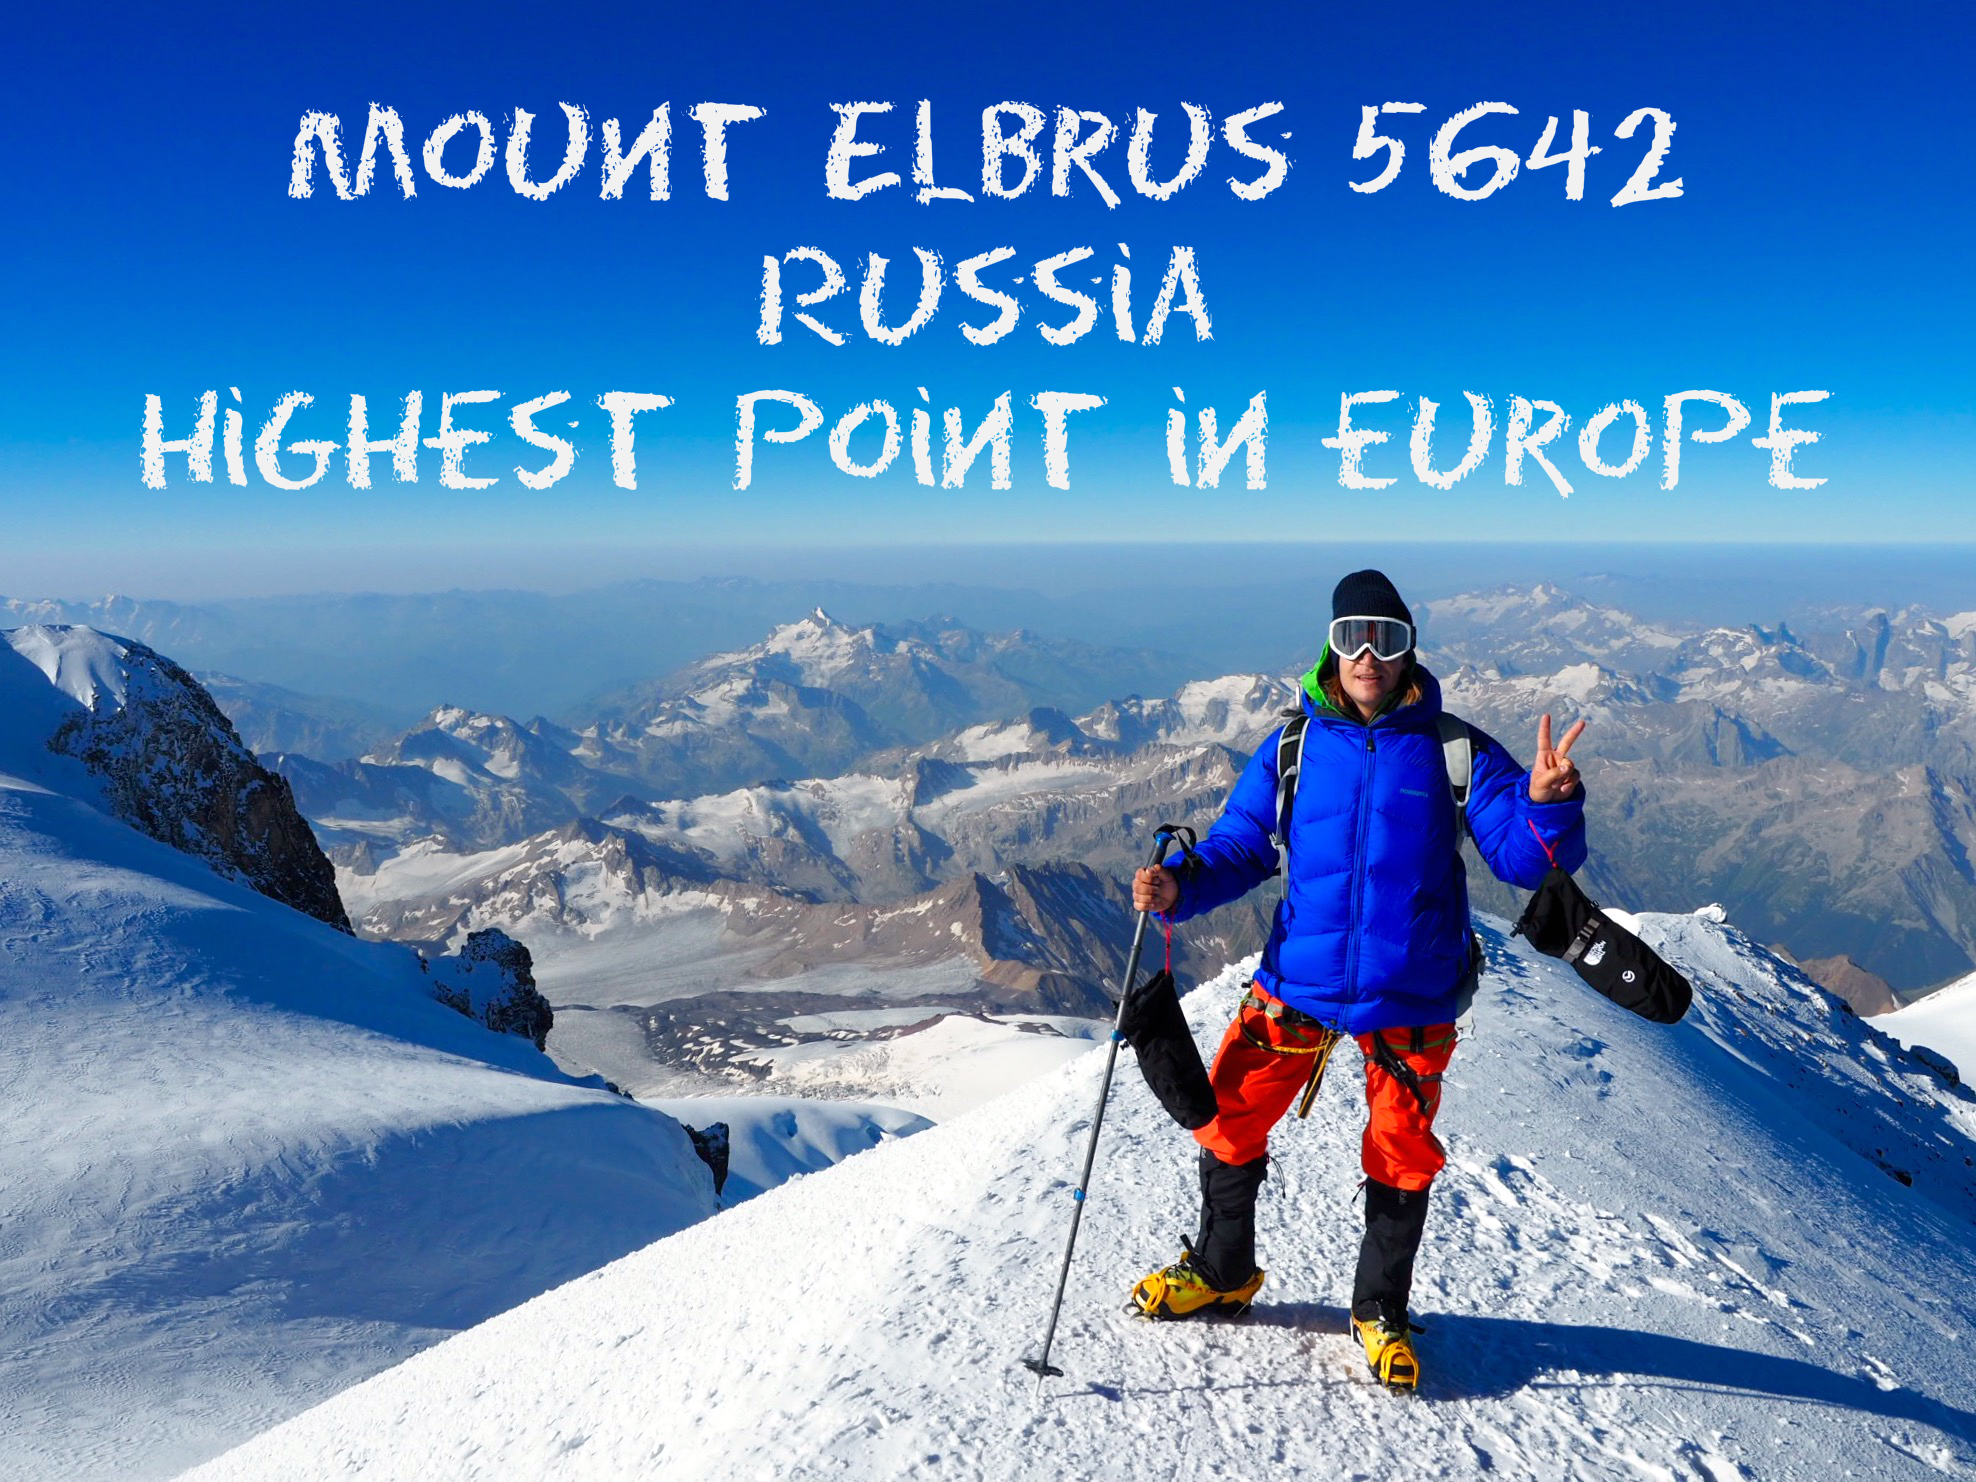 Wanna climb a really high mountain? Take your first of the Seven summits? Try Elbrus! It's hard but doable and if you ask me, not as touristic as Kilimanjaro and you won't meet your best friends grand mom.